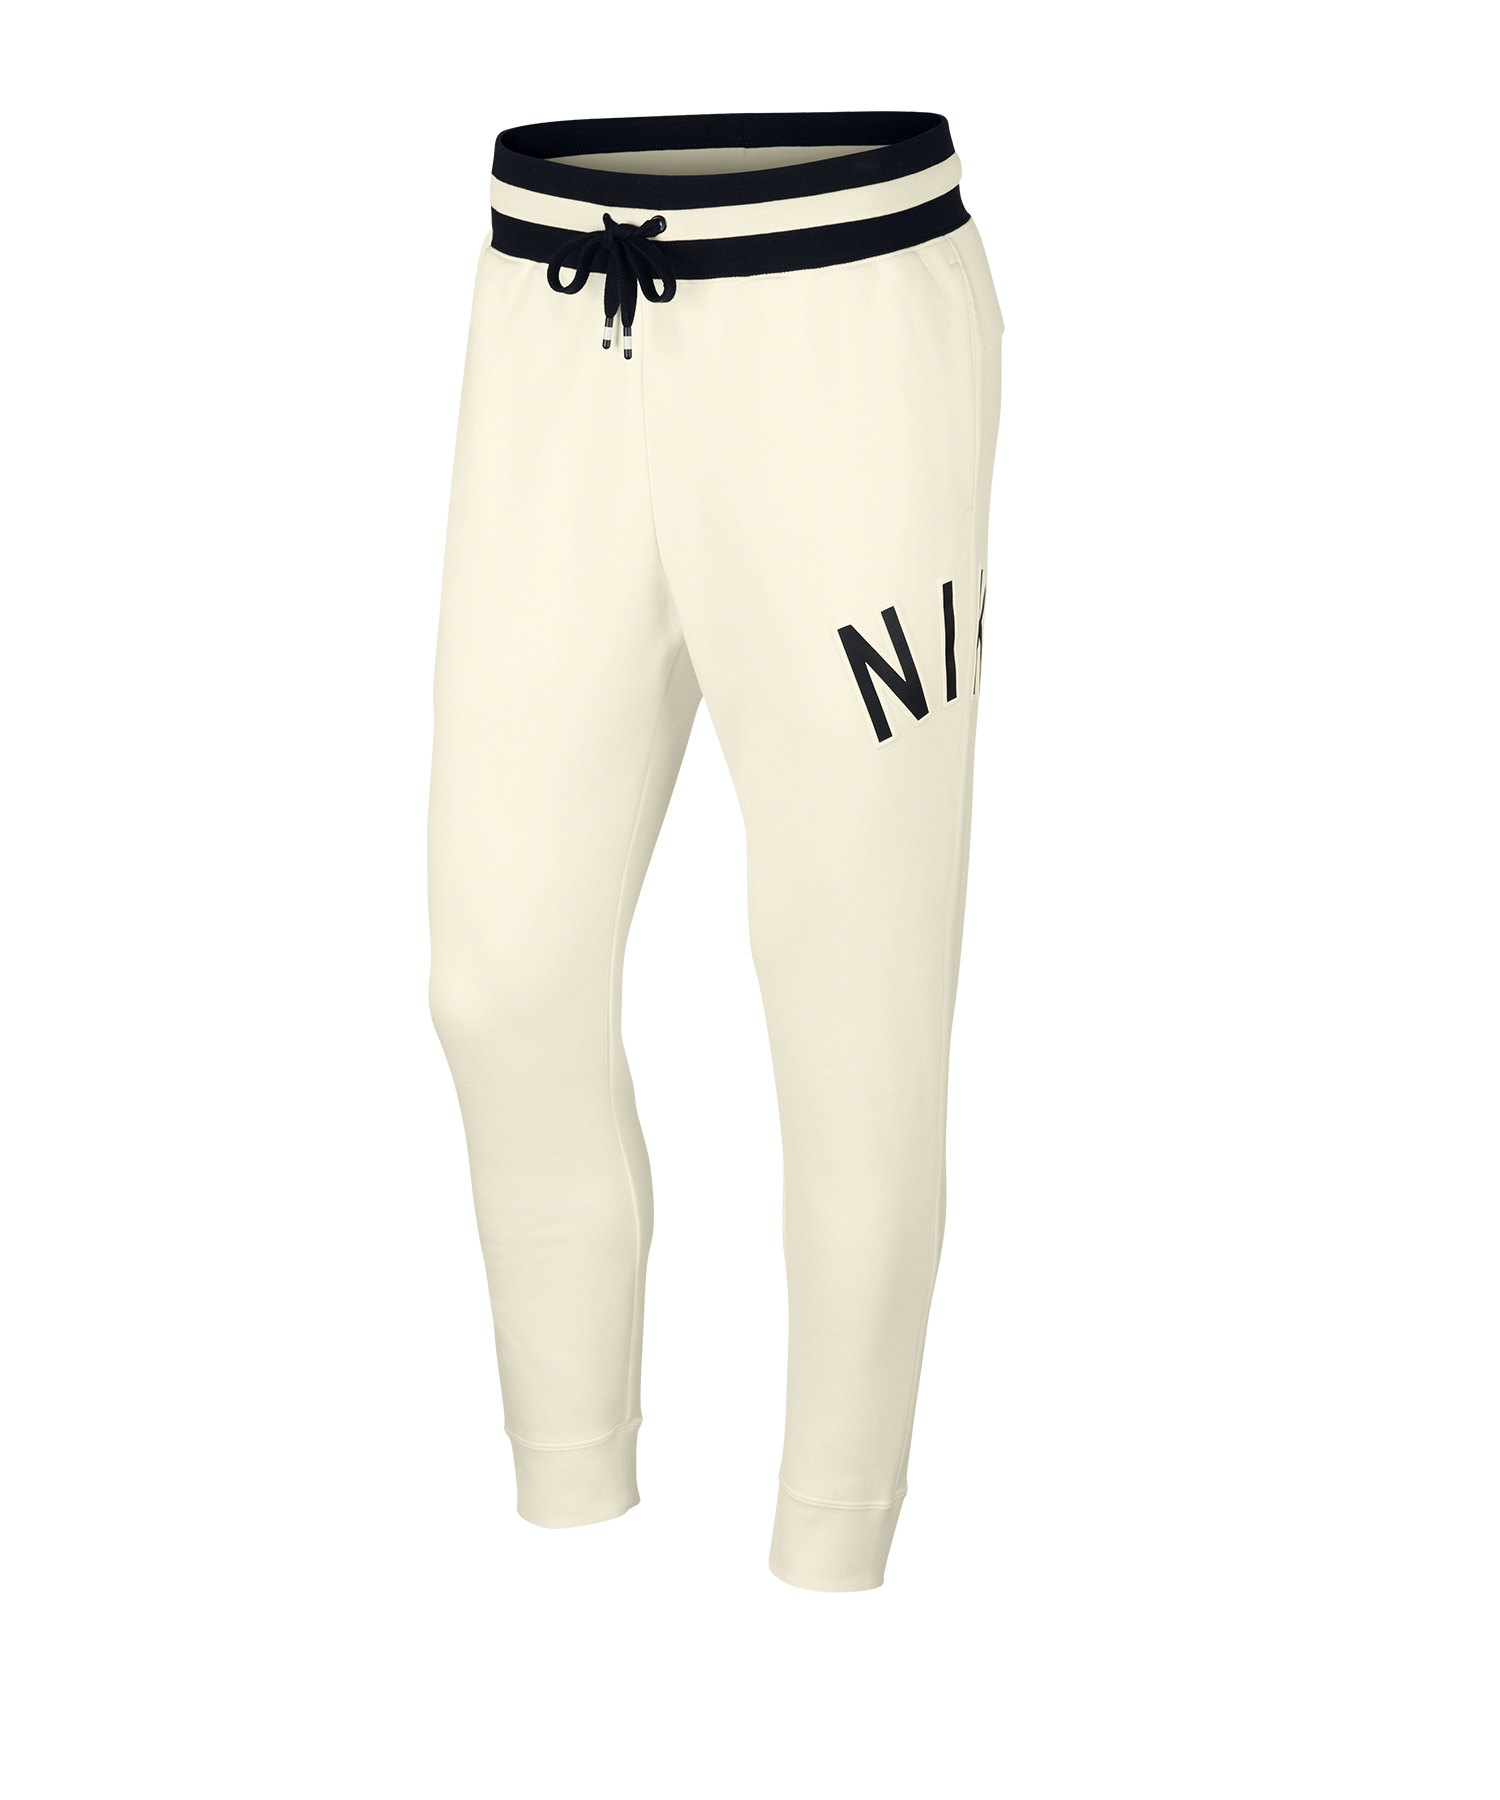 Nike Air Retro Pant Jogginghose Weiss Schwarz F133 - Weiss